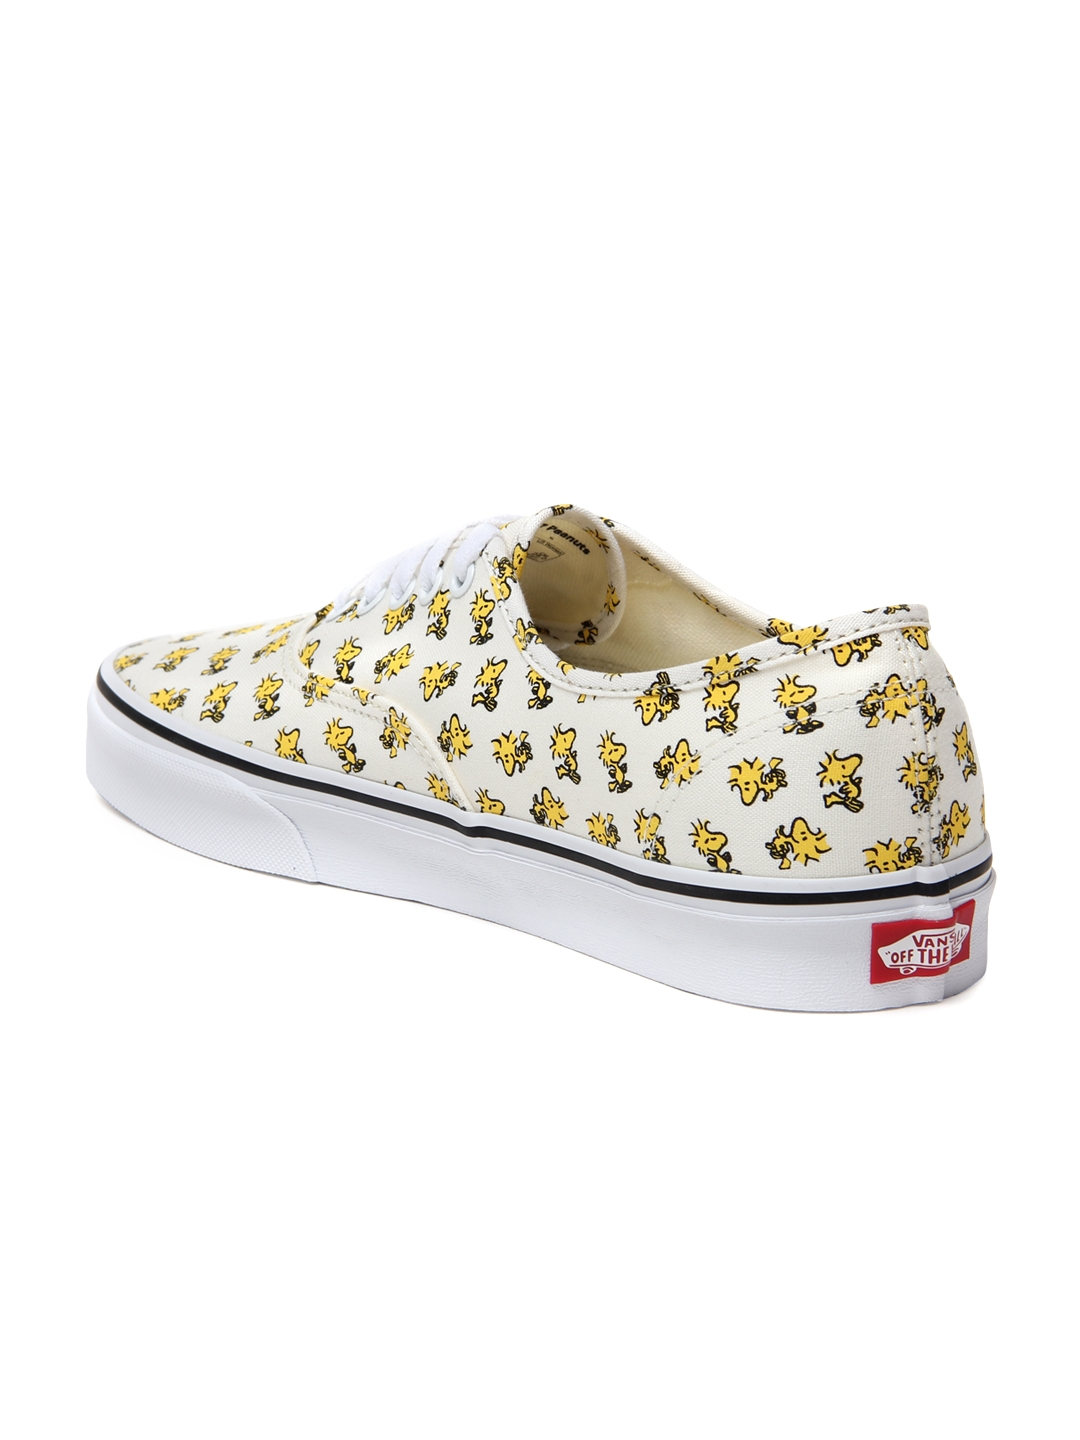 78d29b8e92 Buy Vans Unisex Off White   Yellow Authentic Printed Sneakers ...